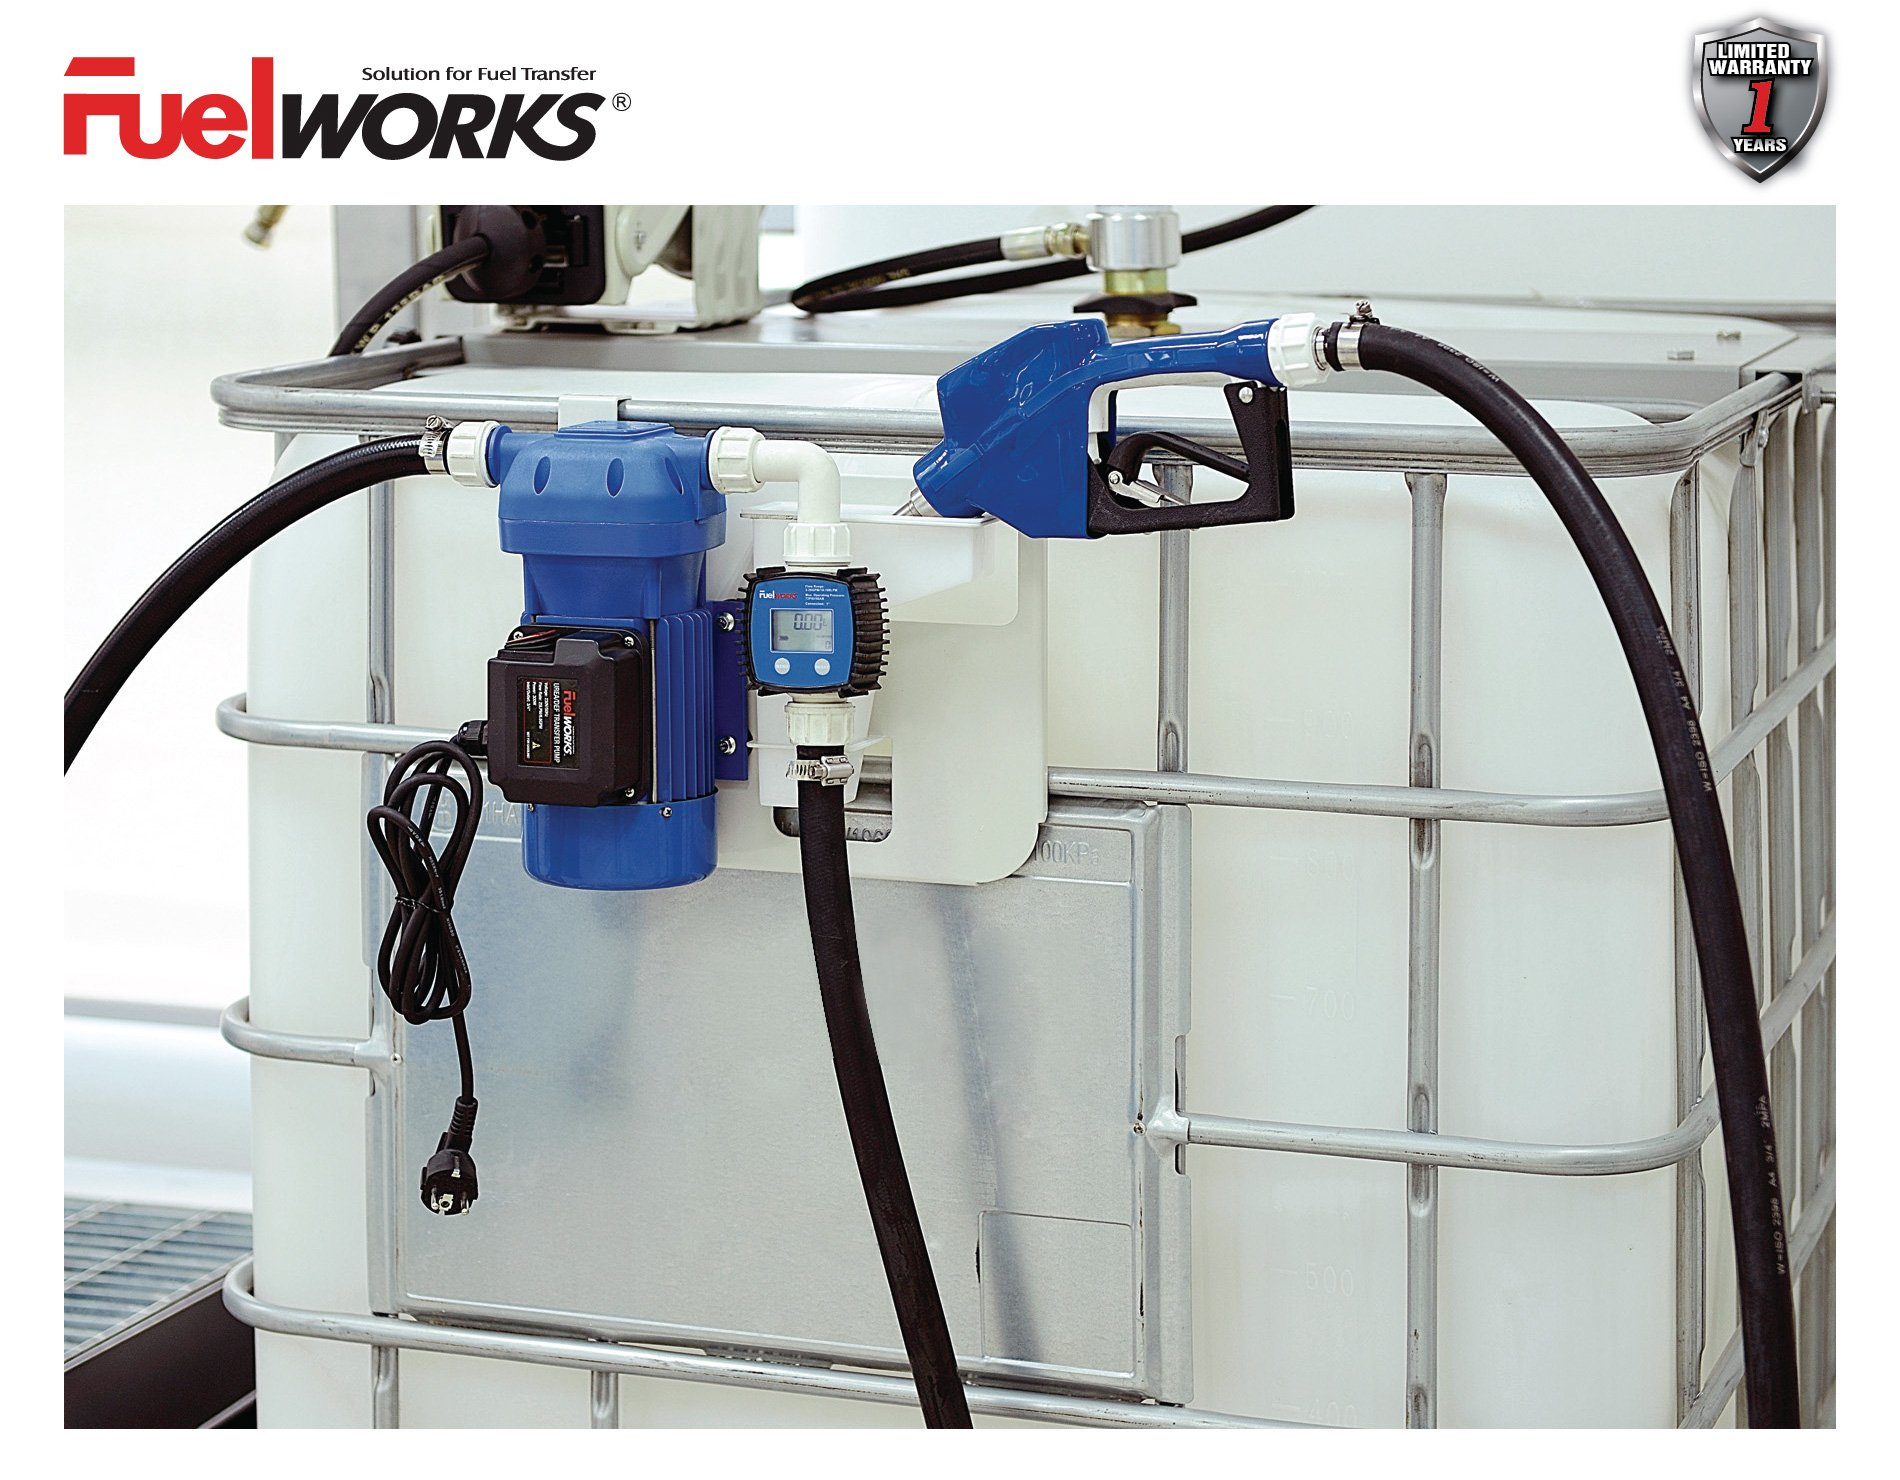 FUELWORKS 120 Volts / 8 GPM Electric DEF Transfer Pump Kit for Diesel Exhaust Fluid/ Chemical Fluid & Auto Nozzle (Pump Kit w/ Nozzle) by Fuelworks